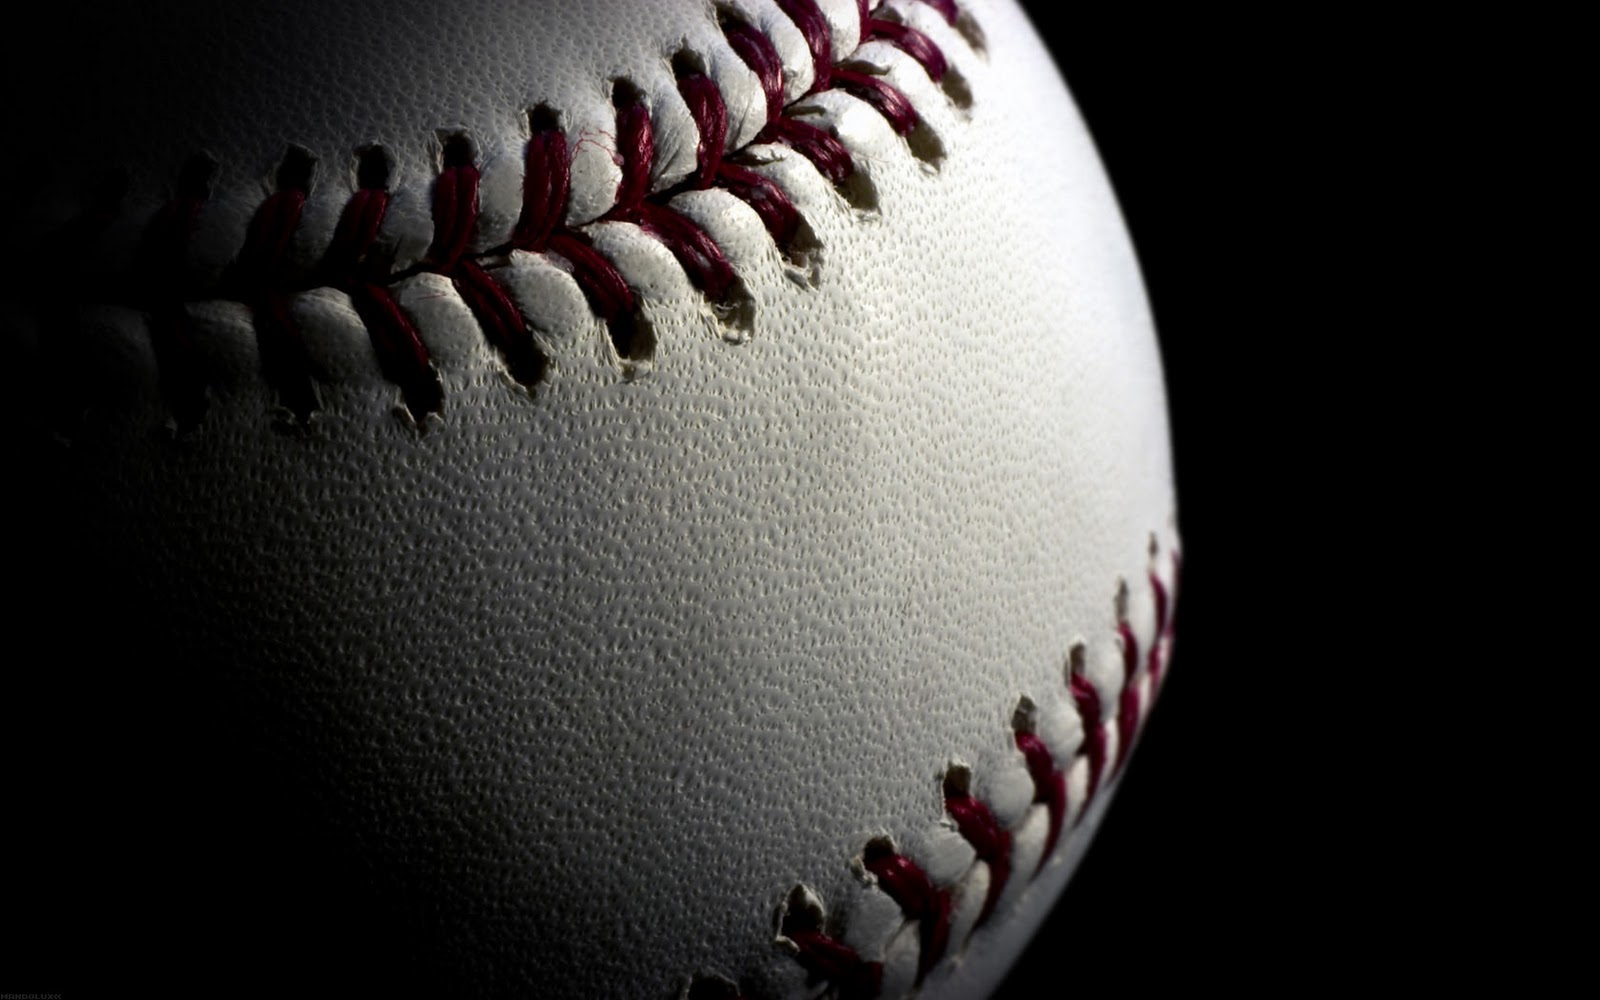 The-best-top-desktop-baseball-wallpapers-26-close-up-baseball-wallpaper